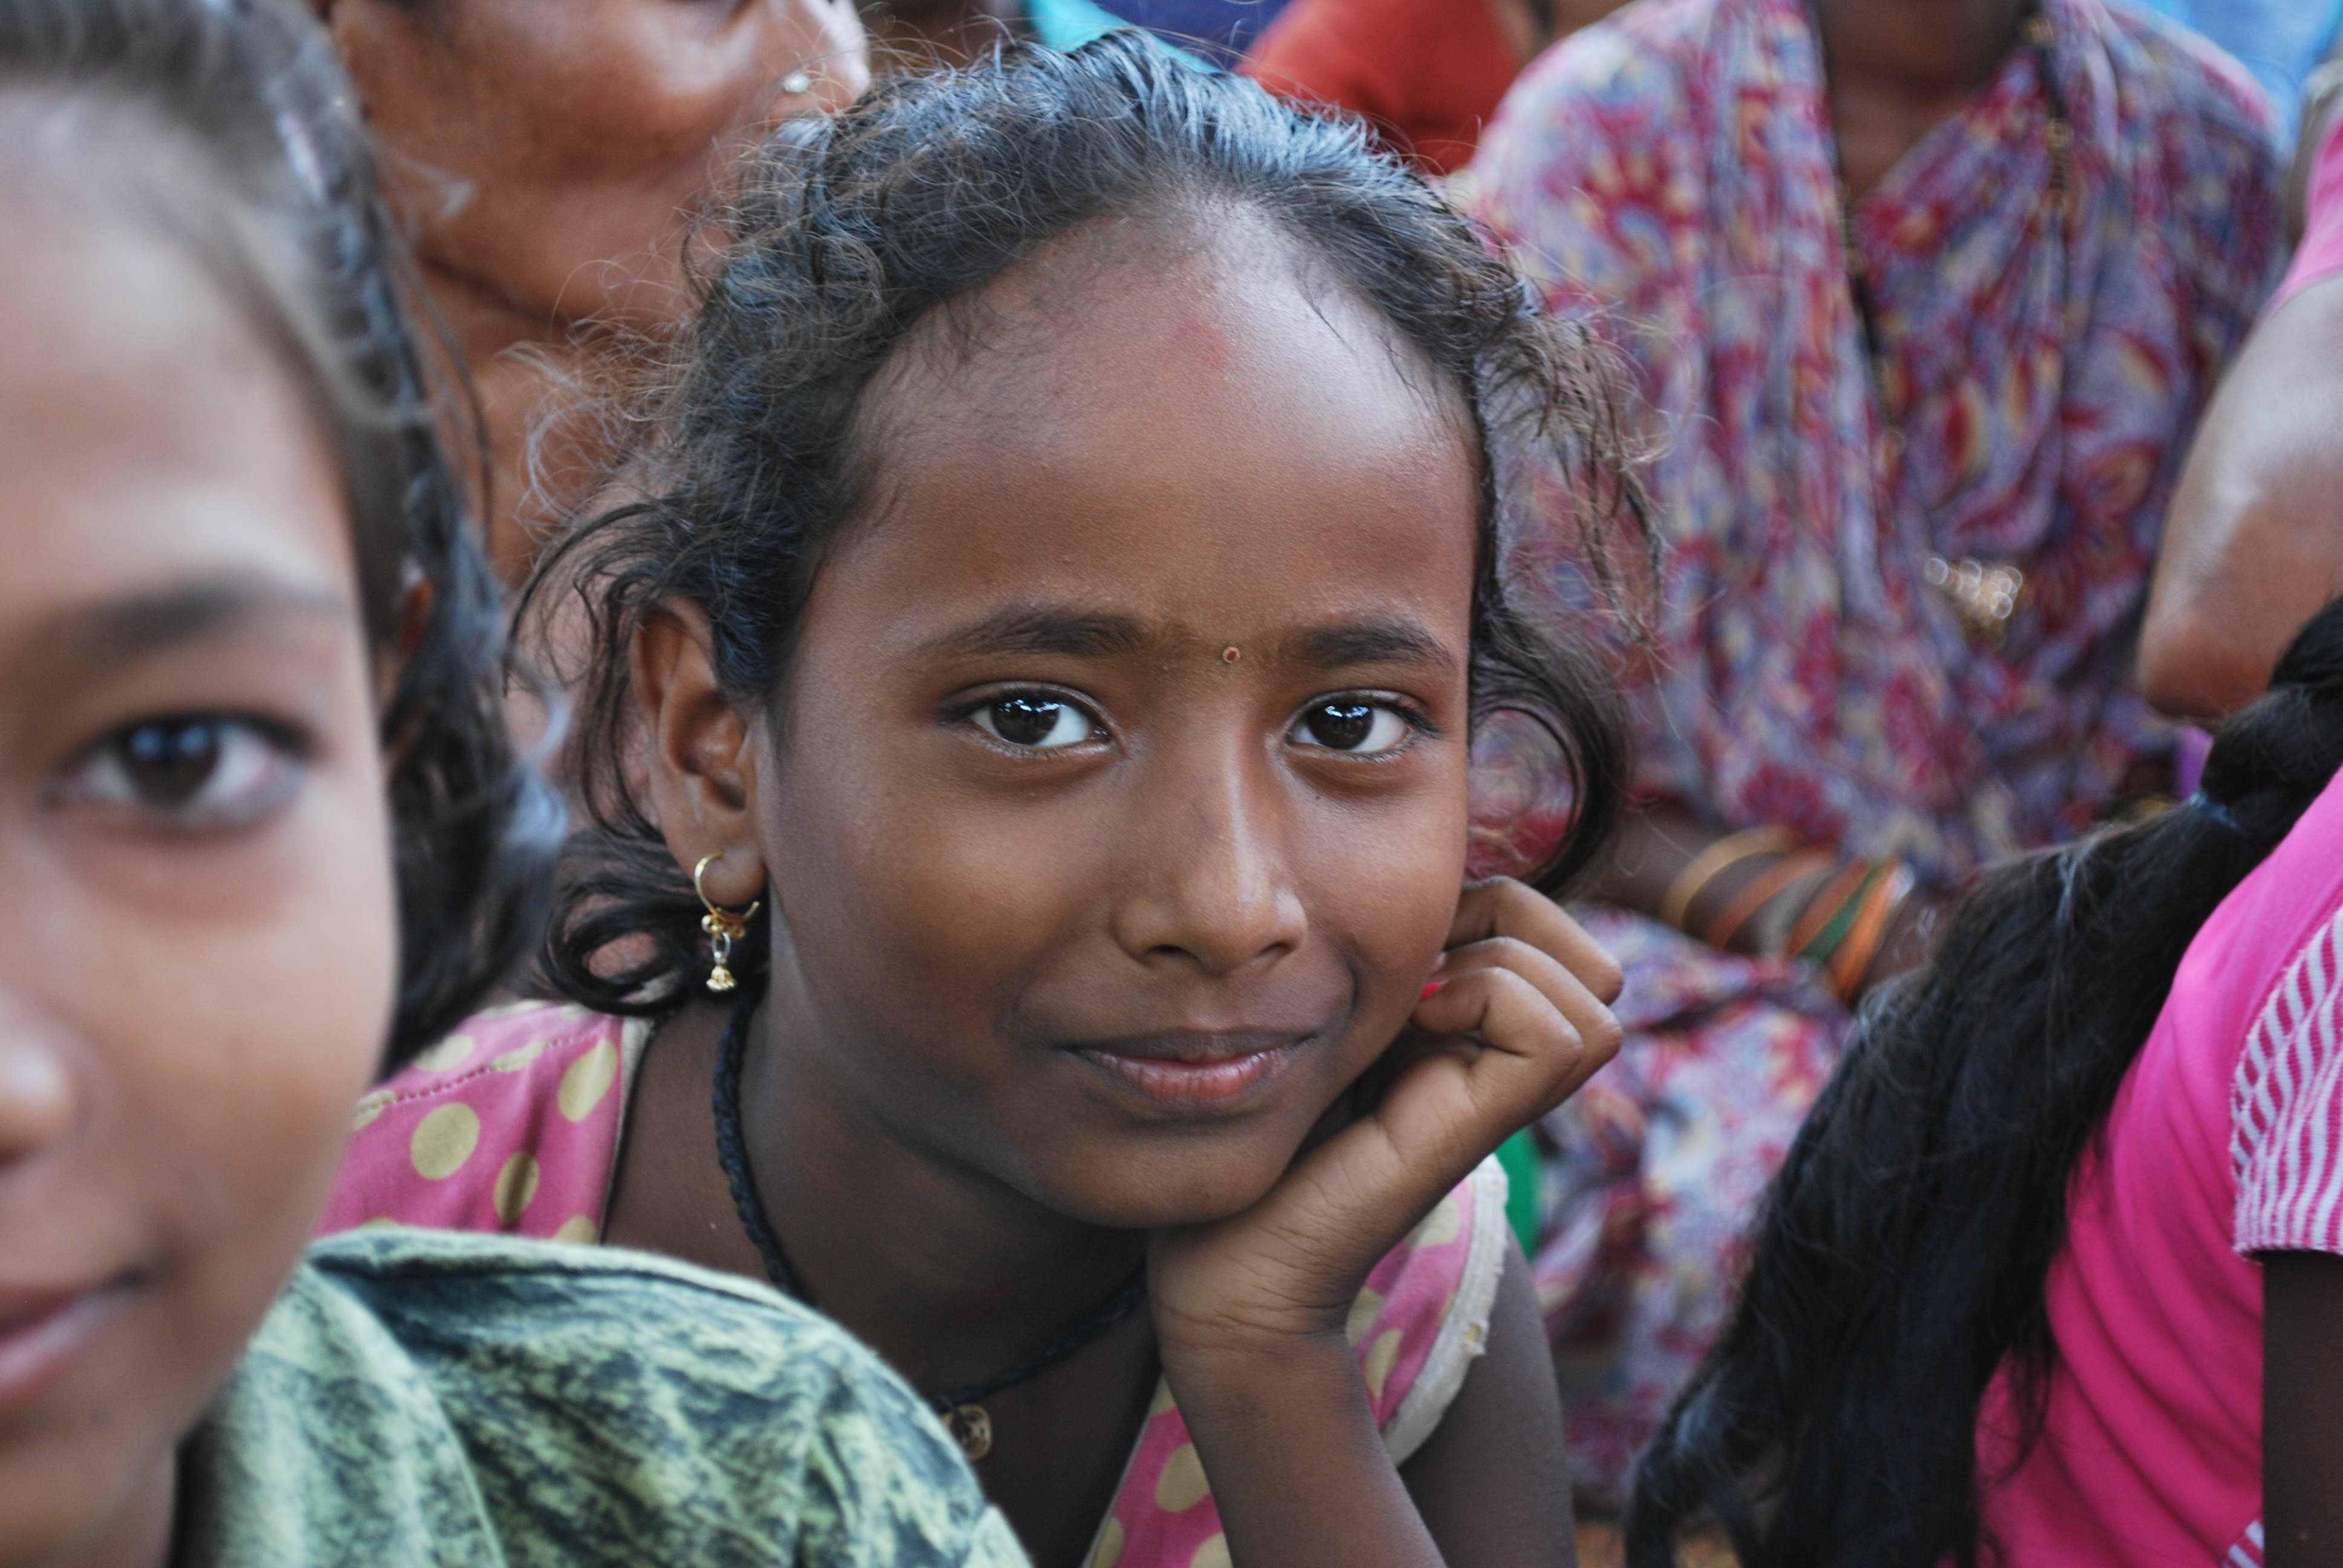 Young girl in India.